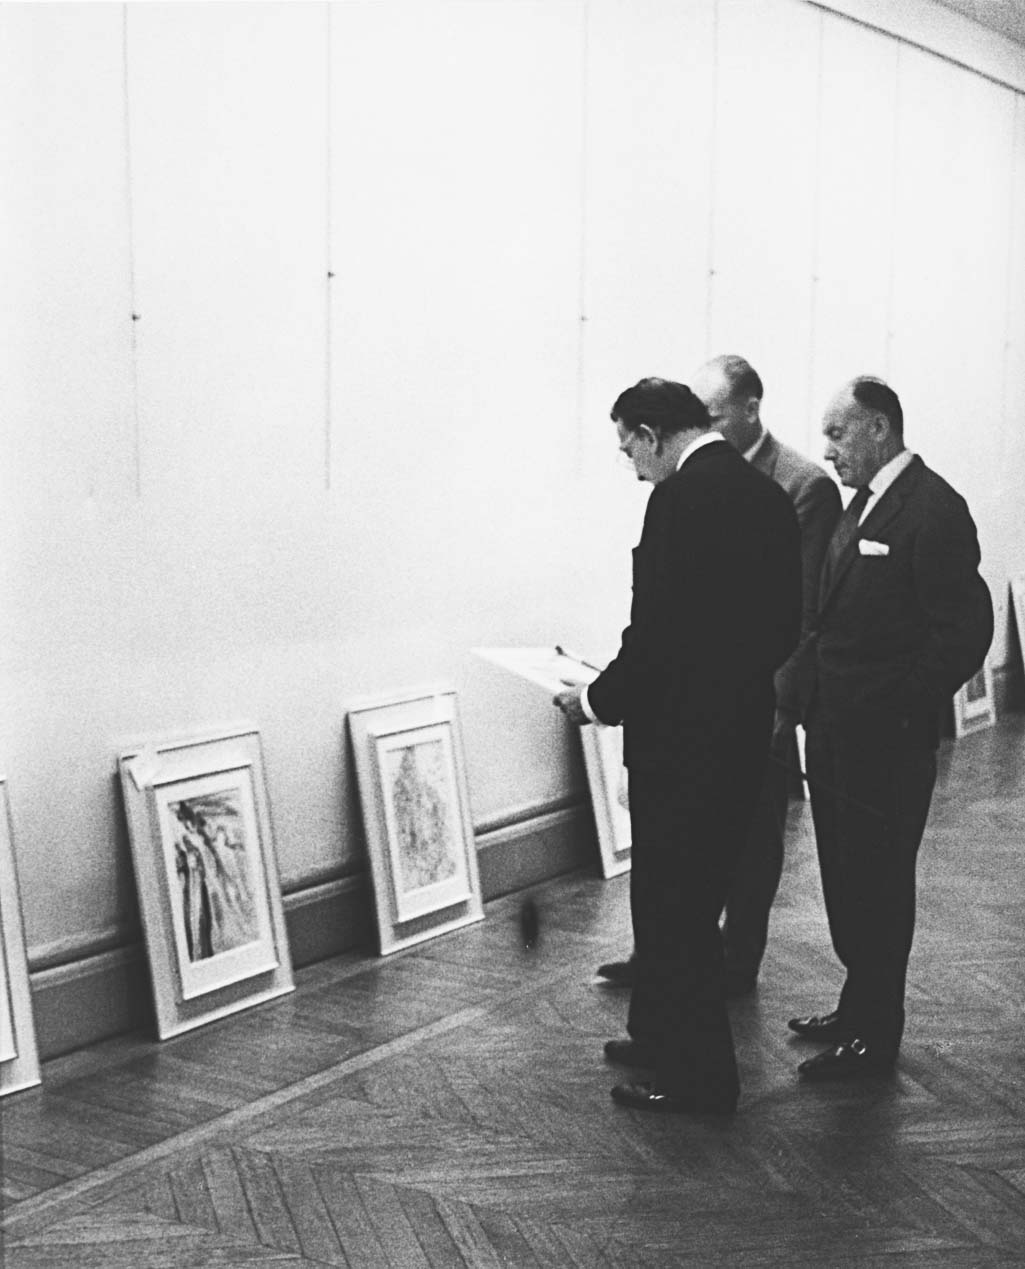 """Salvador Dalí, Jean Estrade, and Joseph Forêt review wood engraving proofs for """"The Divine Comedy"""" at the Museum Galliera, Paris (May 19, 1960). (Photo credit: Eduard Fornés)"""